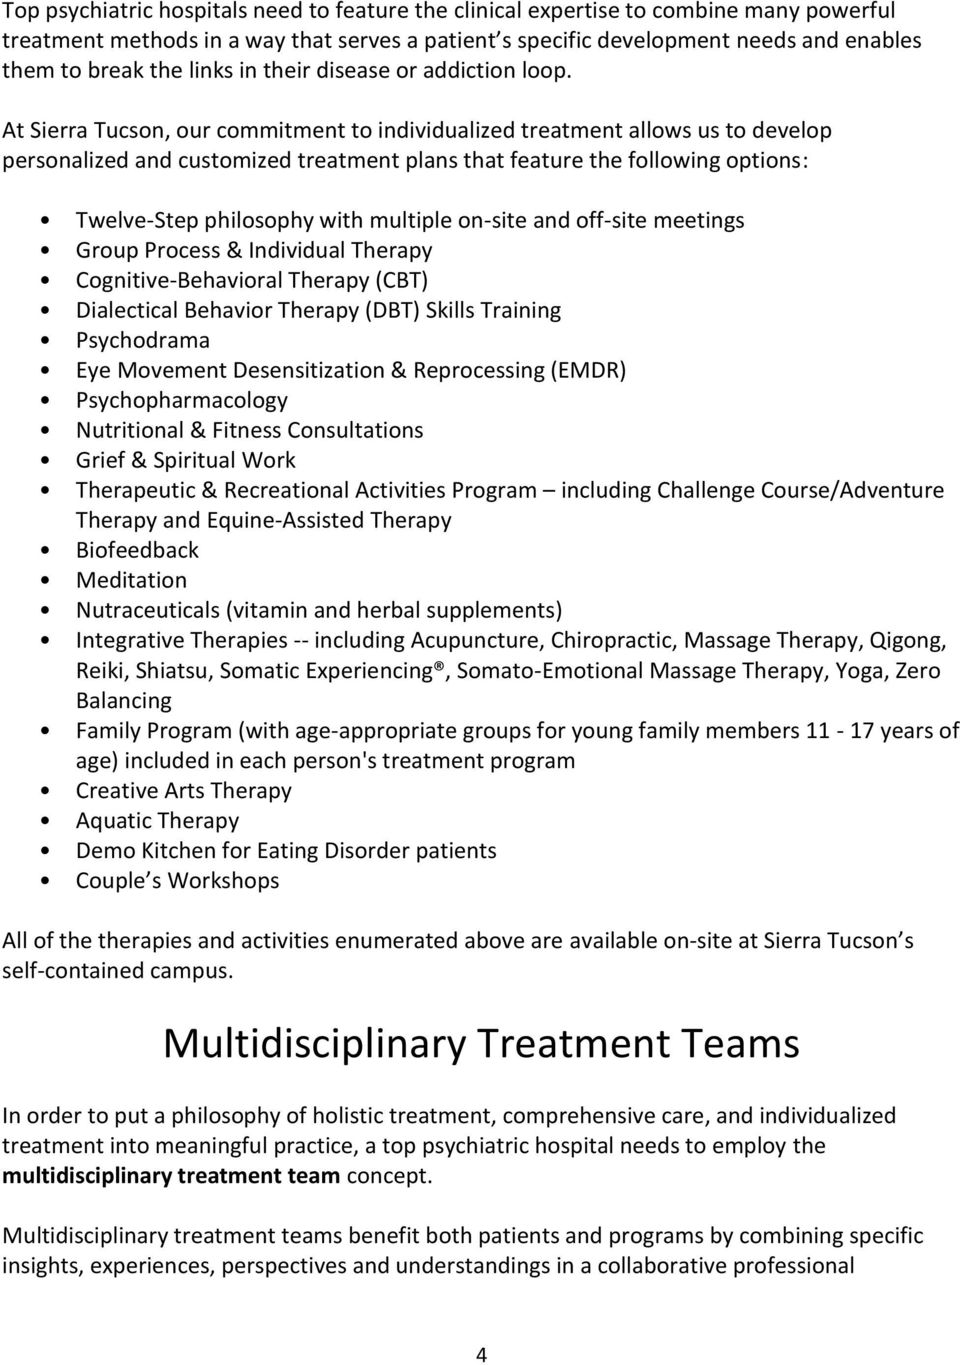 At Sierra Tucson, our commitment to individualized treatment allows us to develop personalized and customized treatment plans that feature the following options: Twelve-Step philosophy with multiple